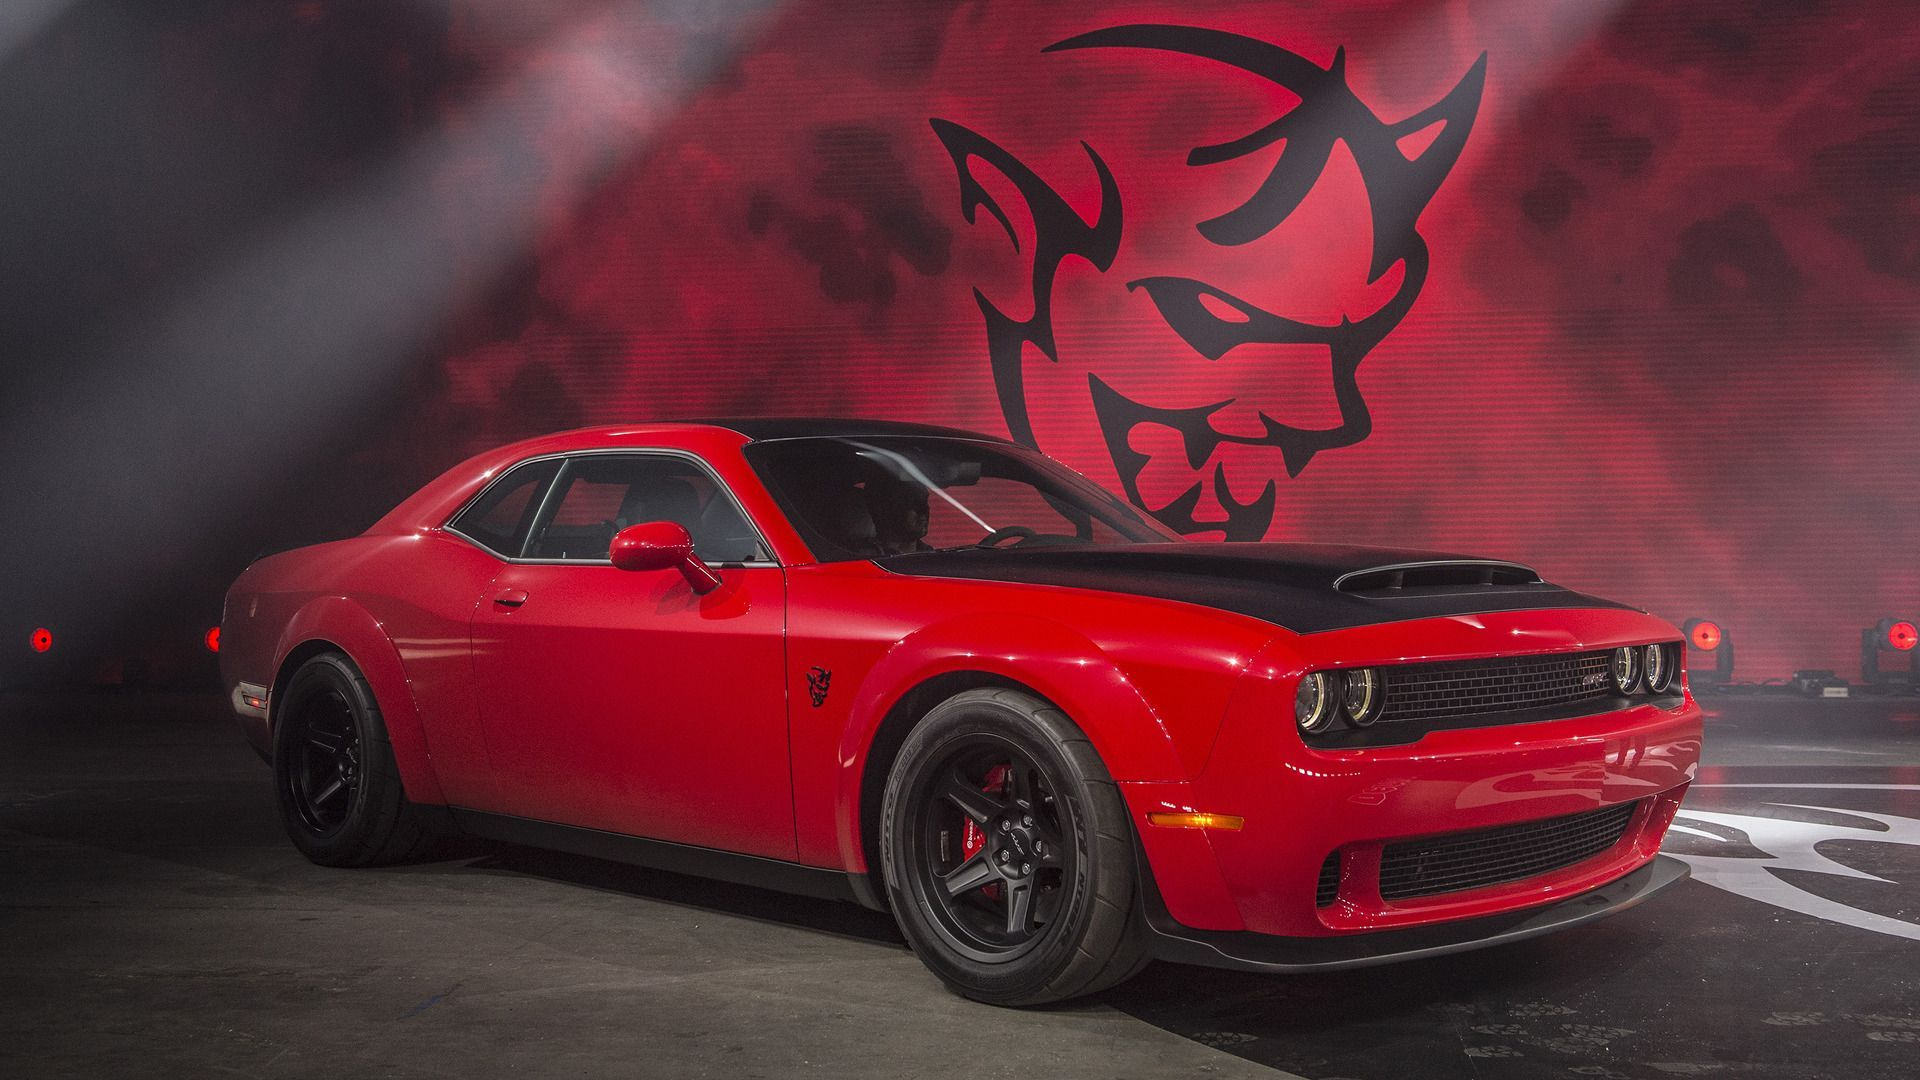 Dodge Charger Demon >> 2018 Dodge Challenger SRT Demon Wallpaper - 2018 Wallpapers HD | Cool American Cars | Pinterest ...